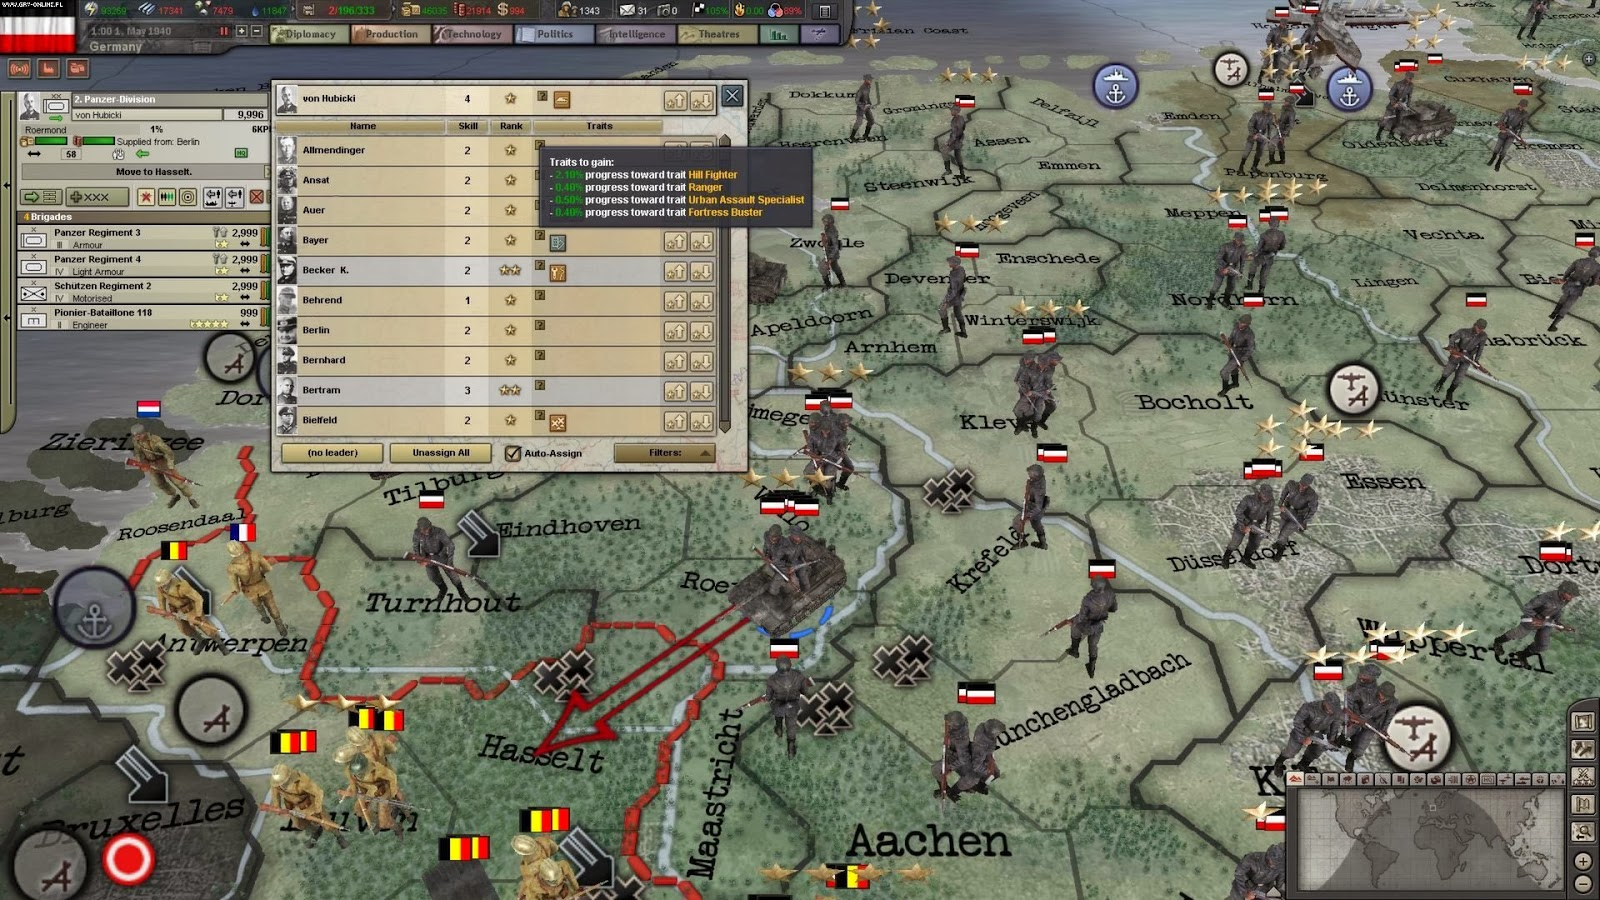 Hearts of iron iii their finest hour free download zoobygames for Freepl